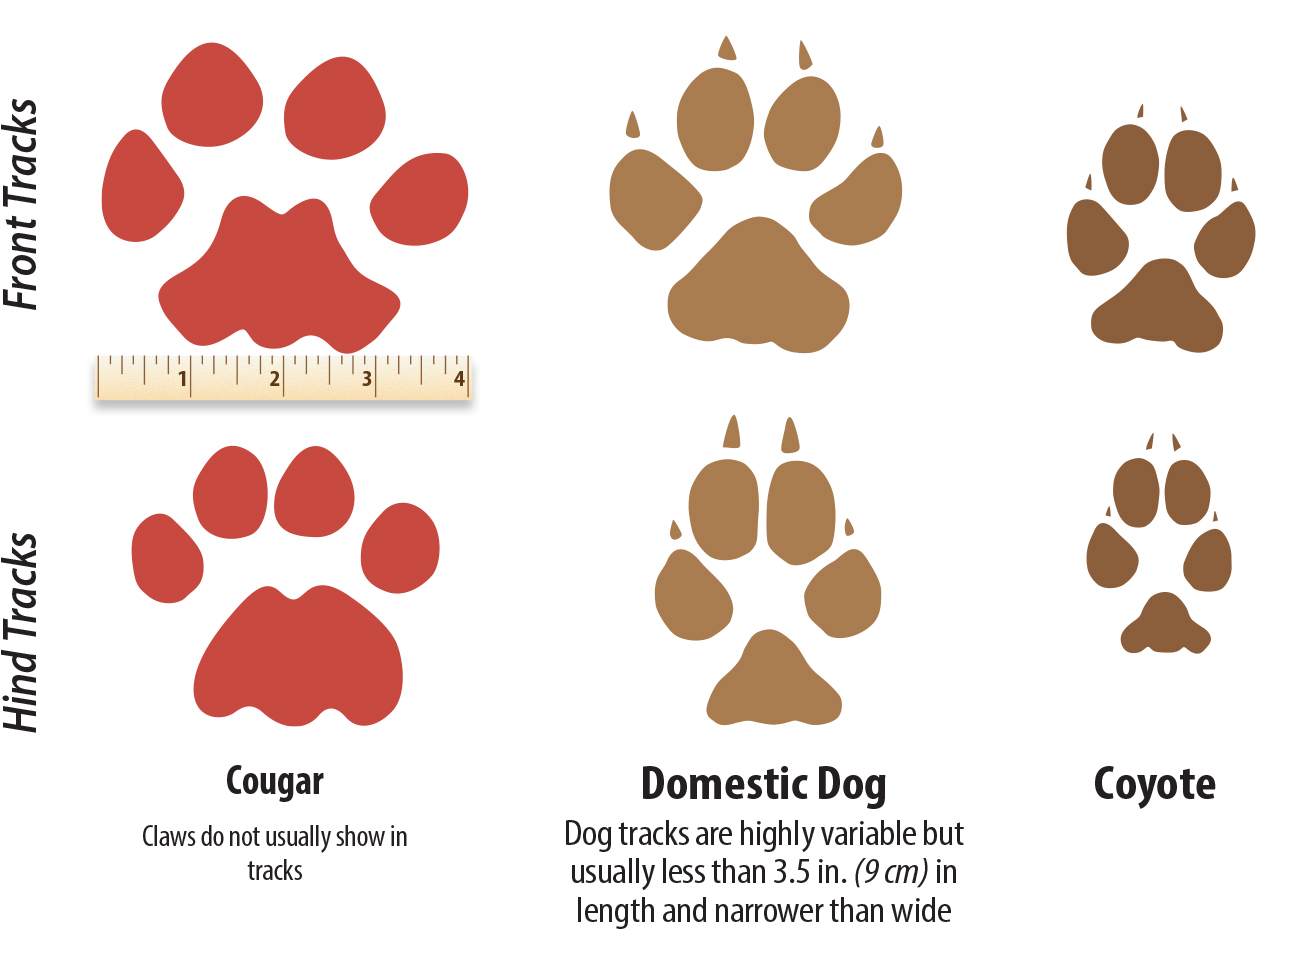 A great little chart from westernwildlife.org showing the difference between Cougar, D.D. and Coyote Tracks